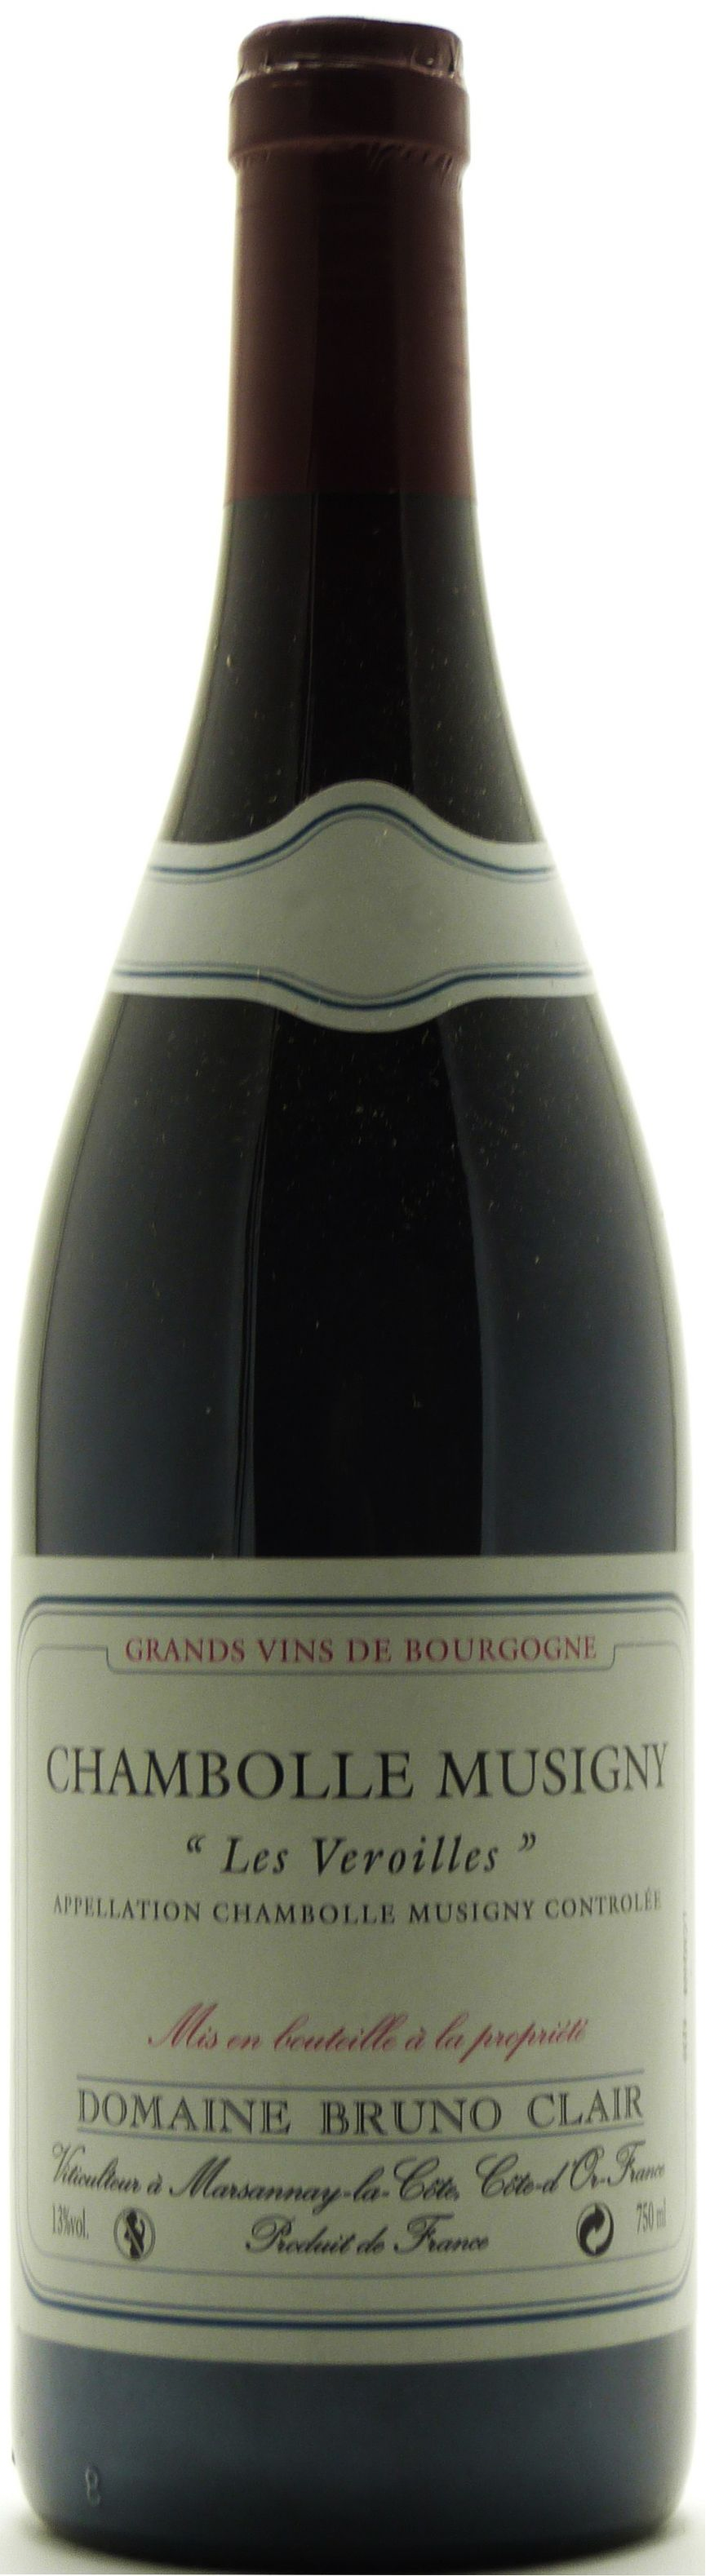 Domaine Bruno Clair, Chambolle-Musigny Le Veroilles, 2006